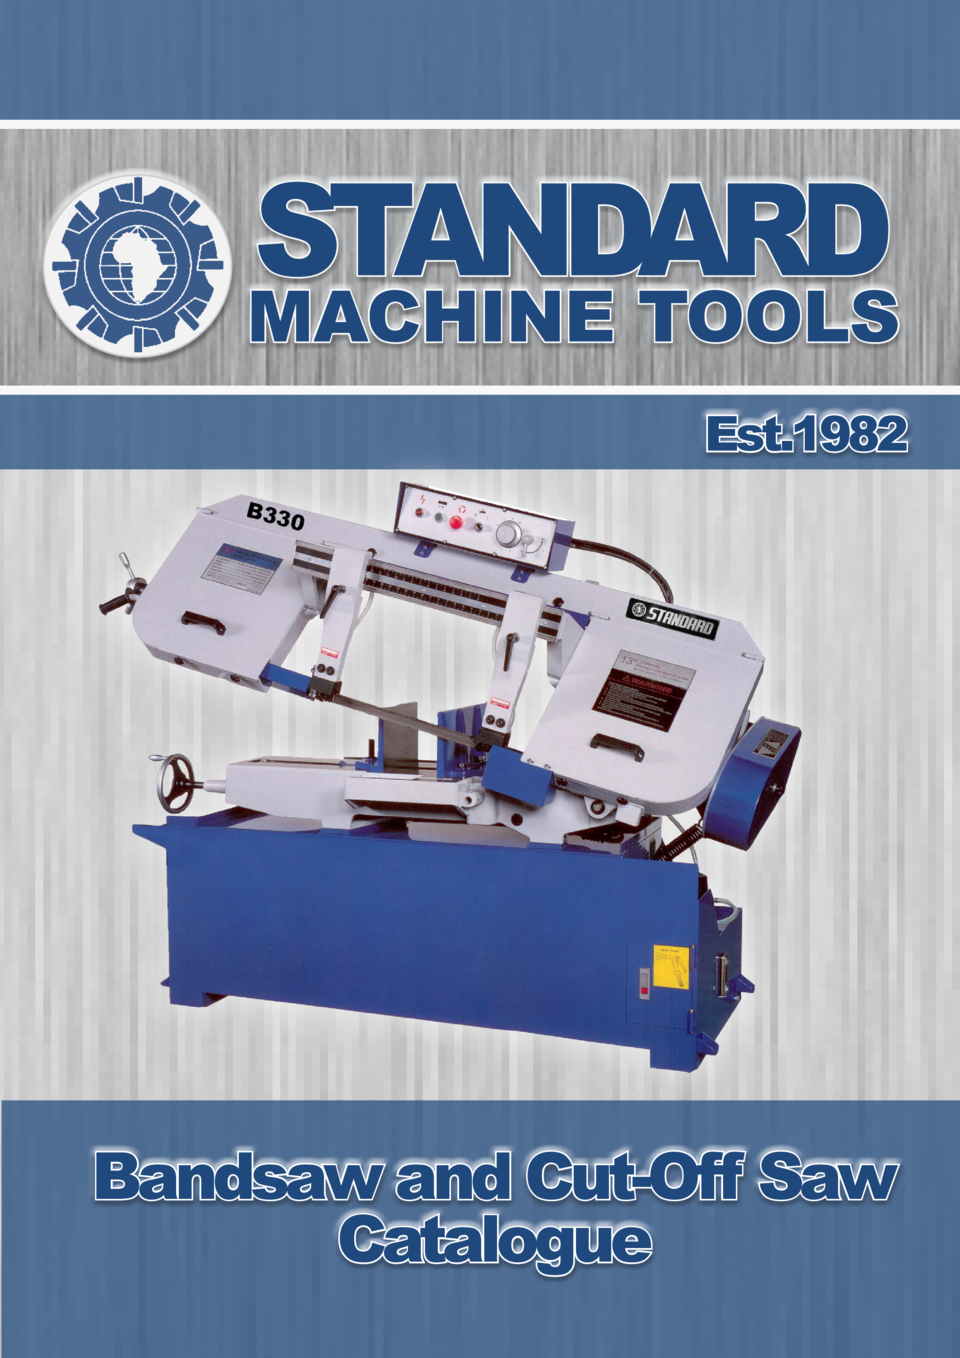 STANDARD  MACHINE TOOLS Est.1982  Bandsaw and Cut-Off Saw Catalogue